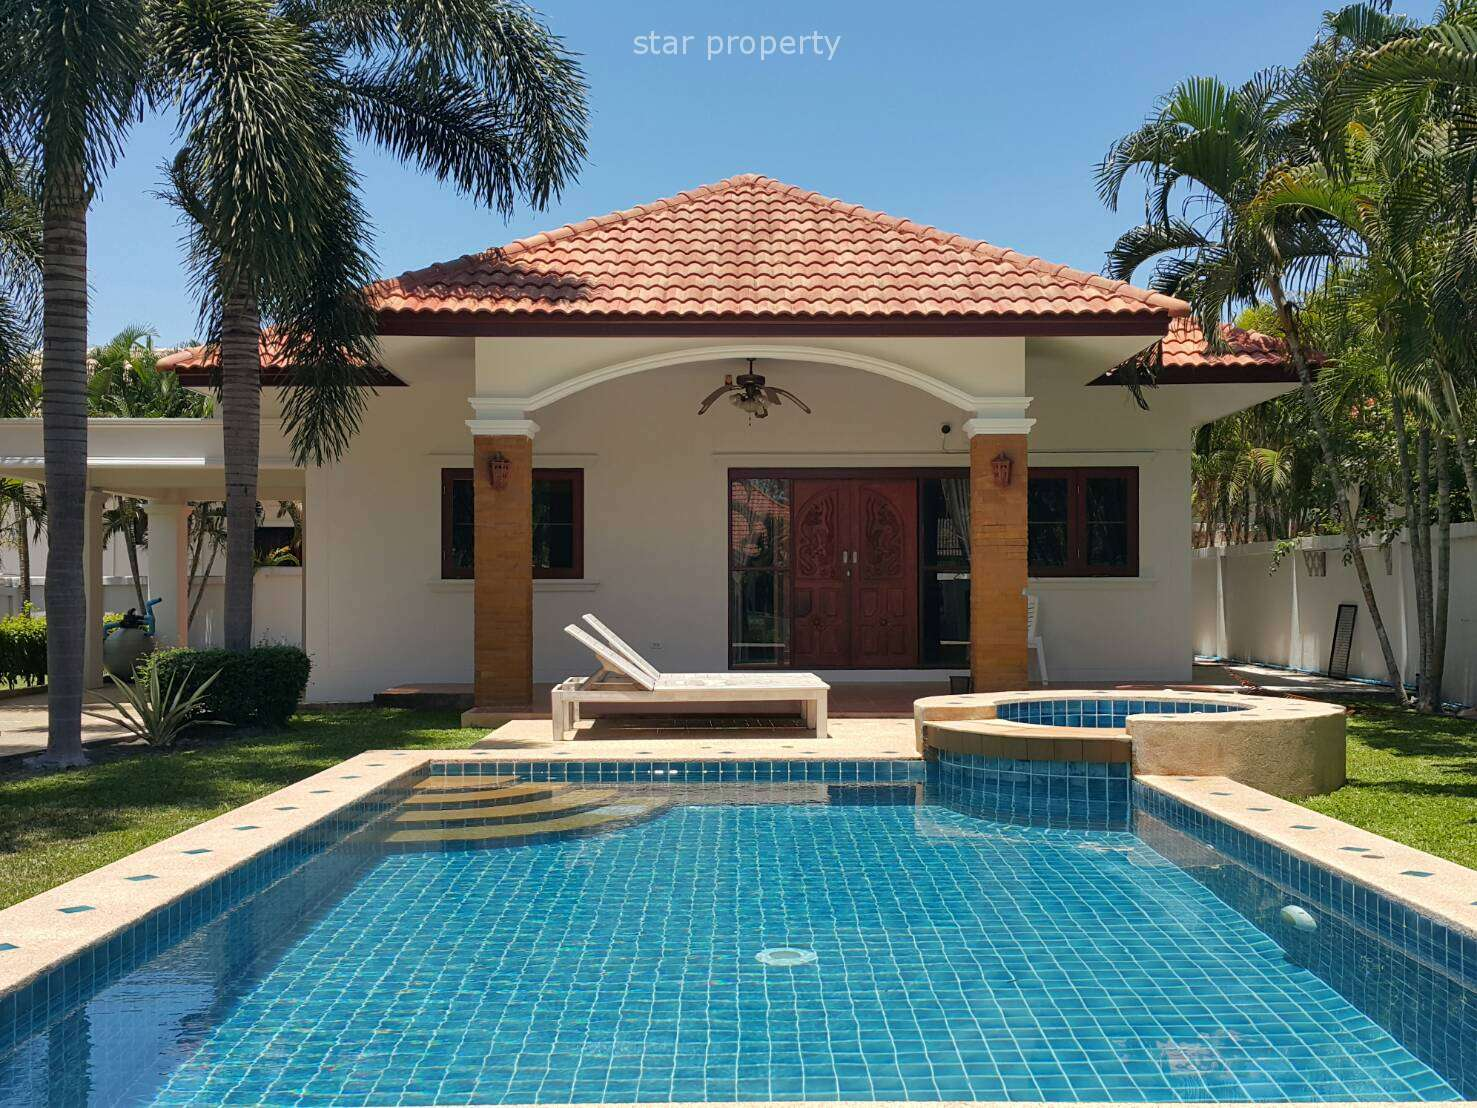 3 Bedroom Pool Villa for Sale at Sunshine Mountain Hua Hin Soi 70 at Hua Hin District